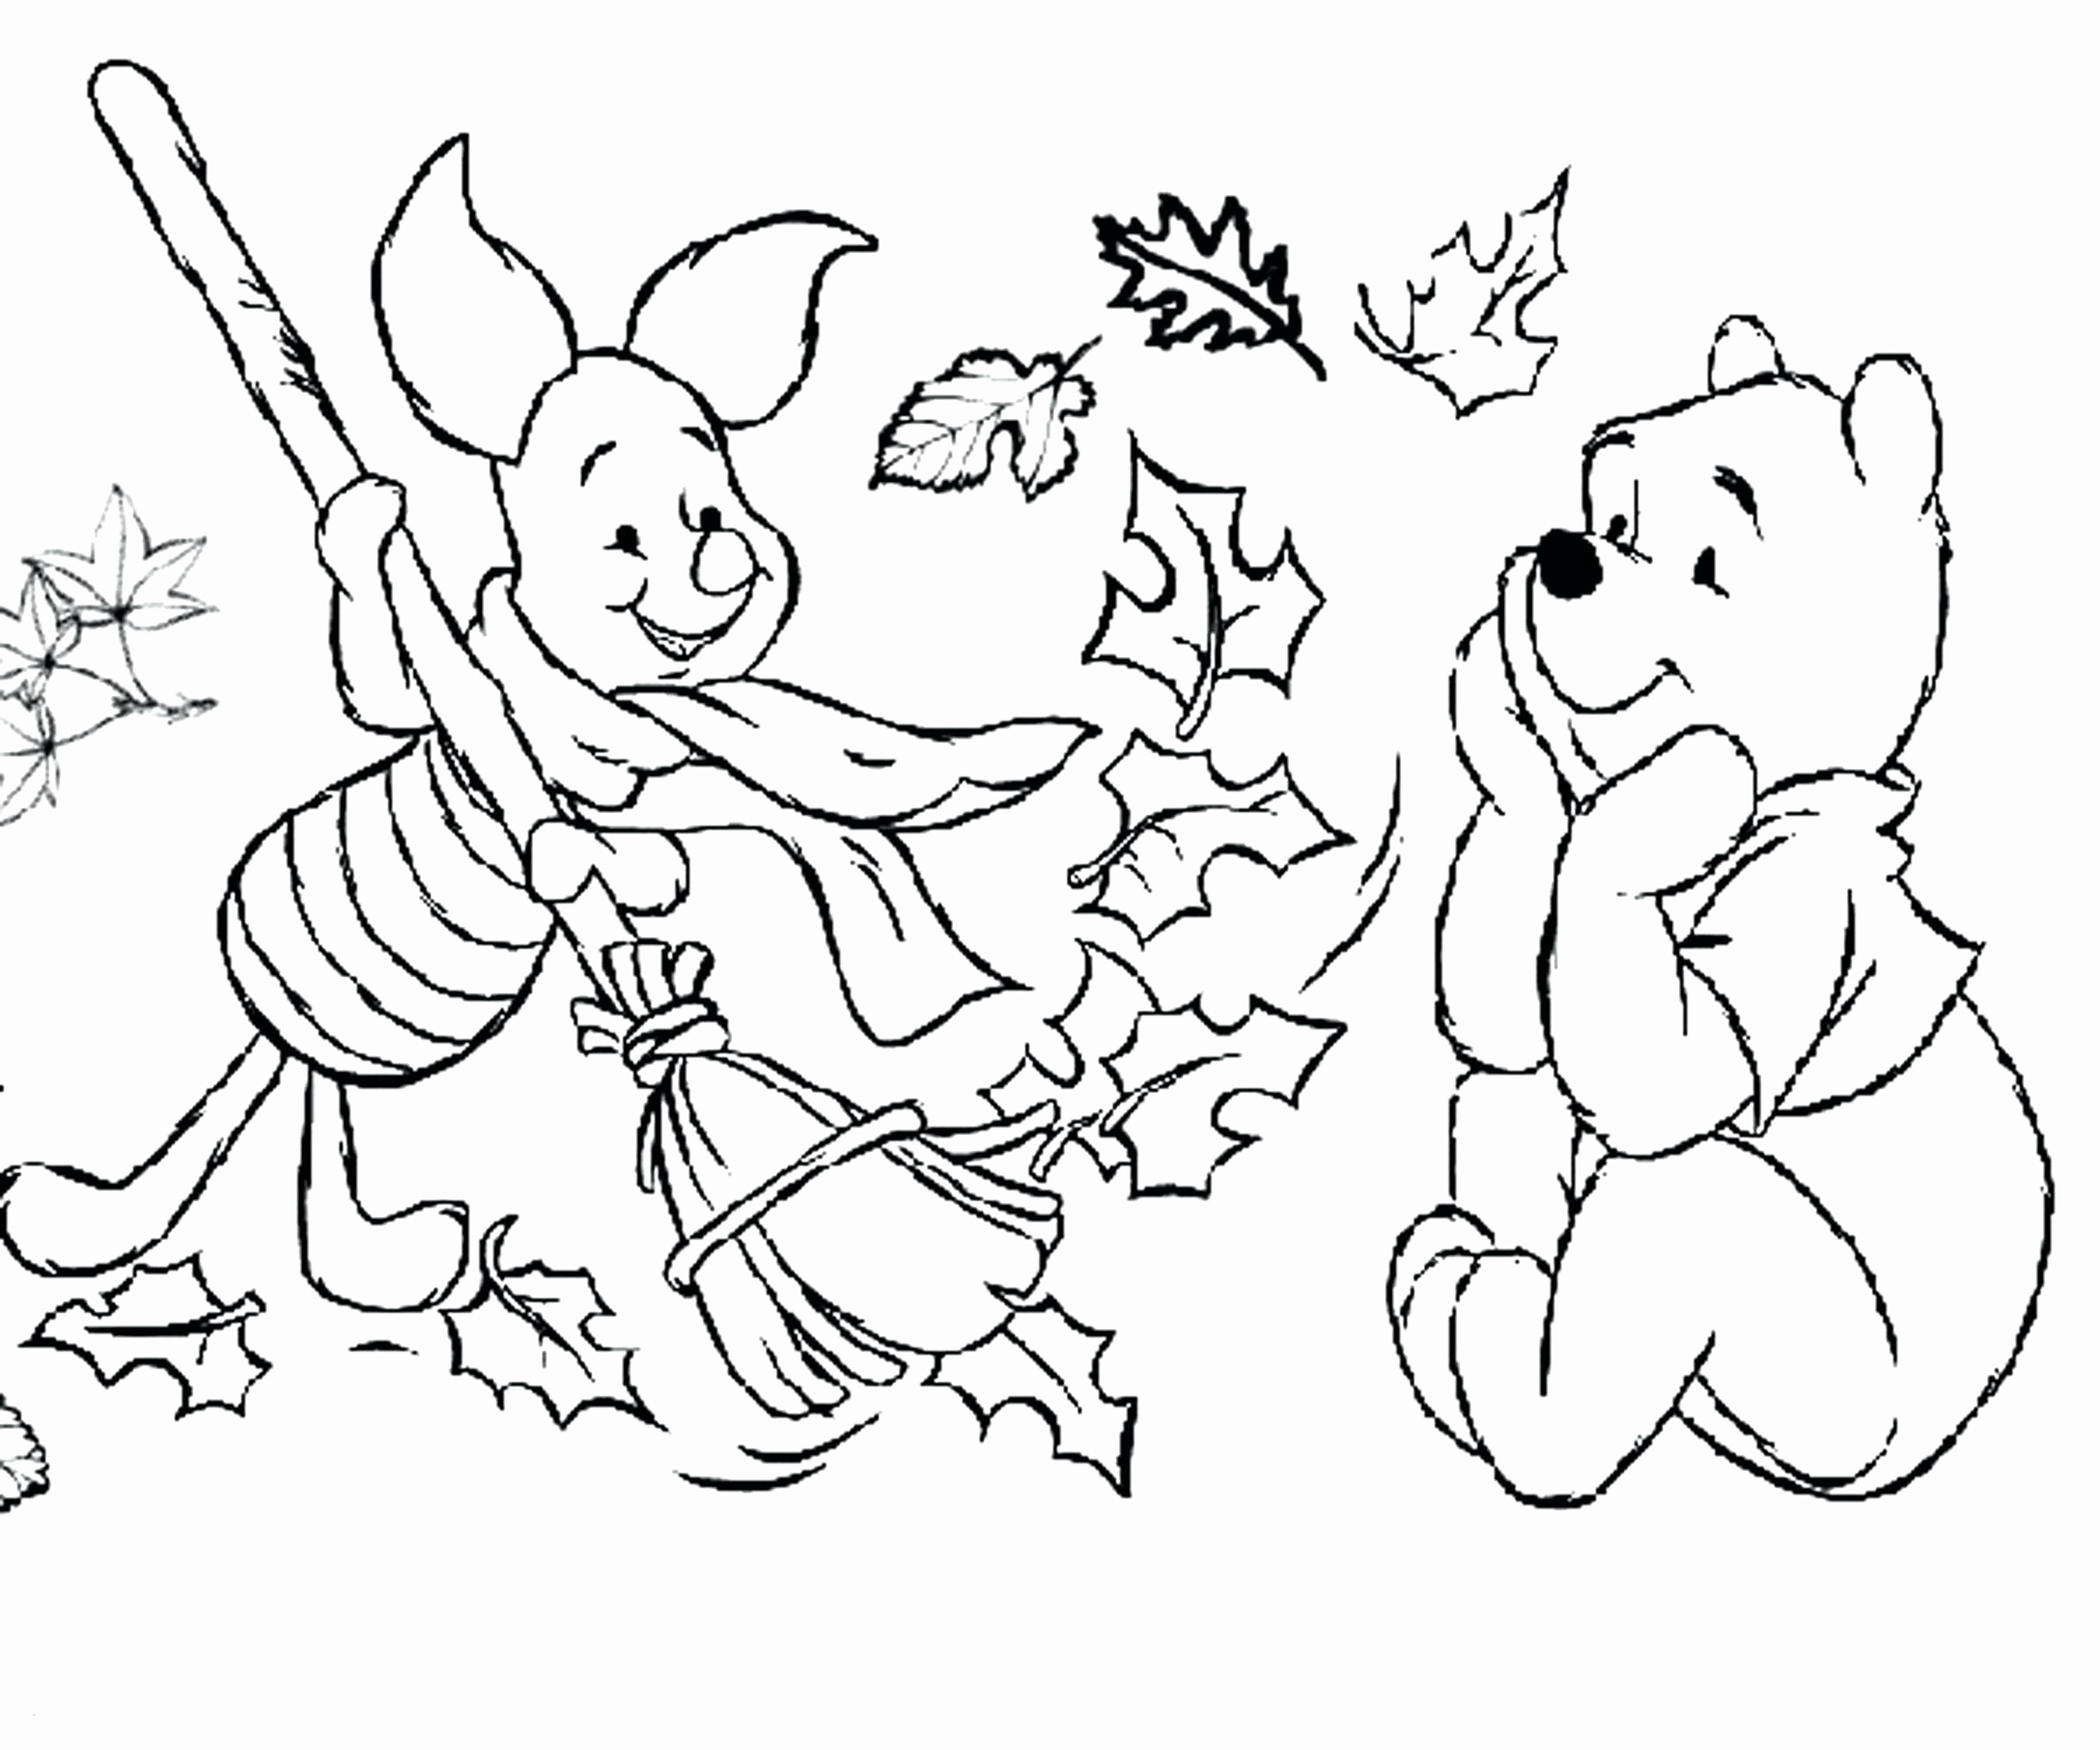 bible coloring pages for kids Collection-Preschool Fall Coloring Pages Bible Coloring Sheets for Kids Wonderful Preschool Fall Coloring 6-s